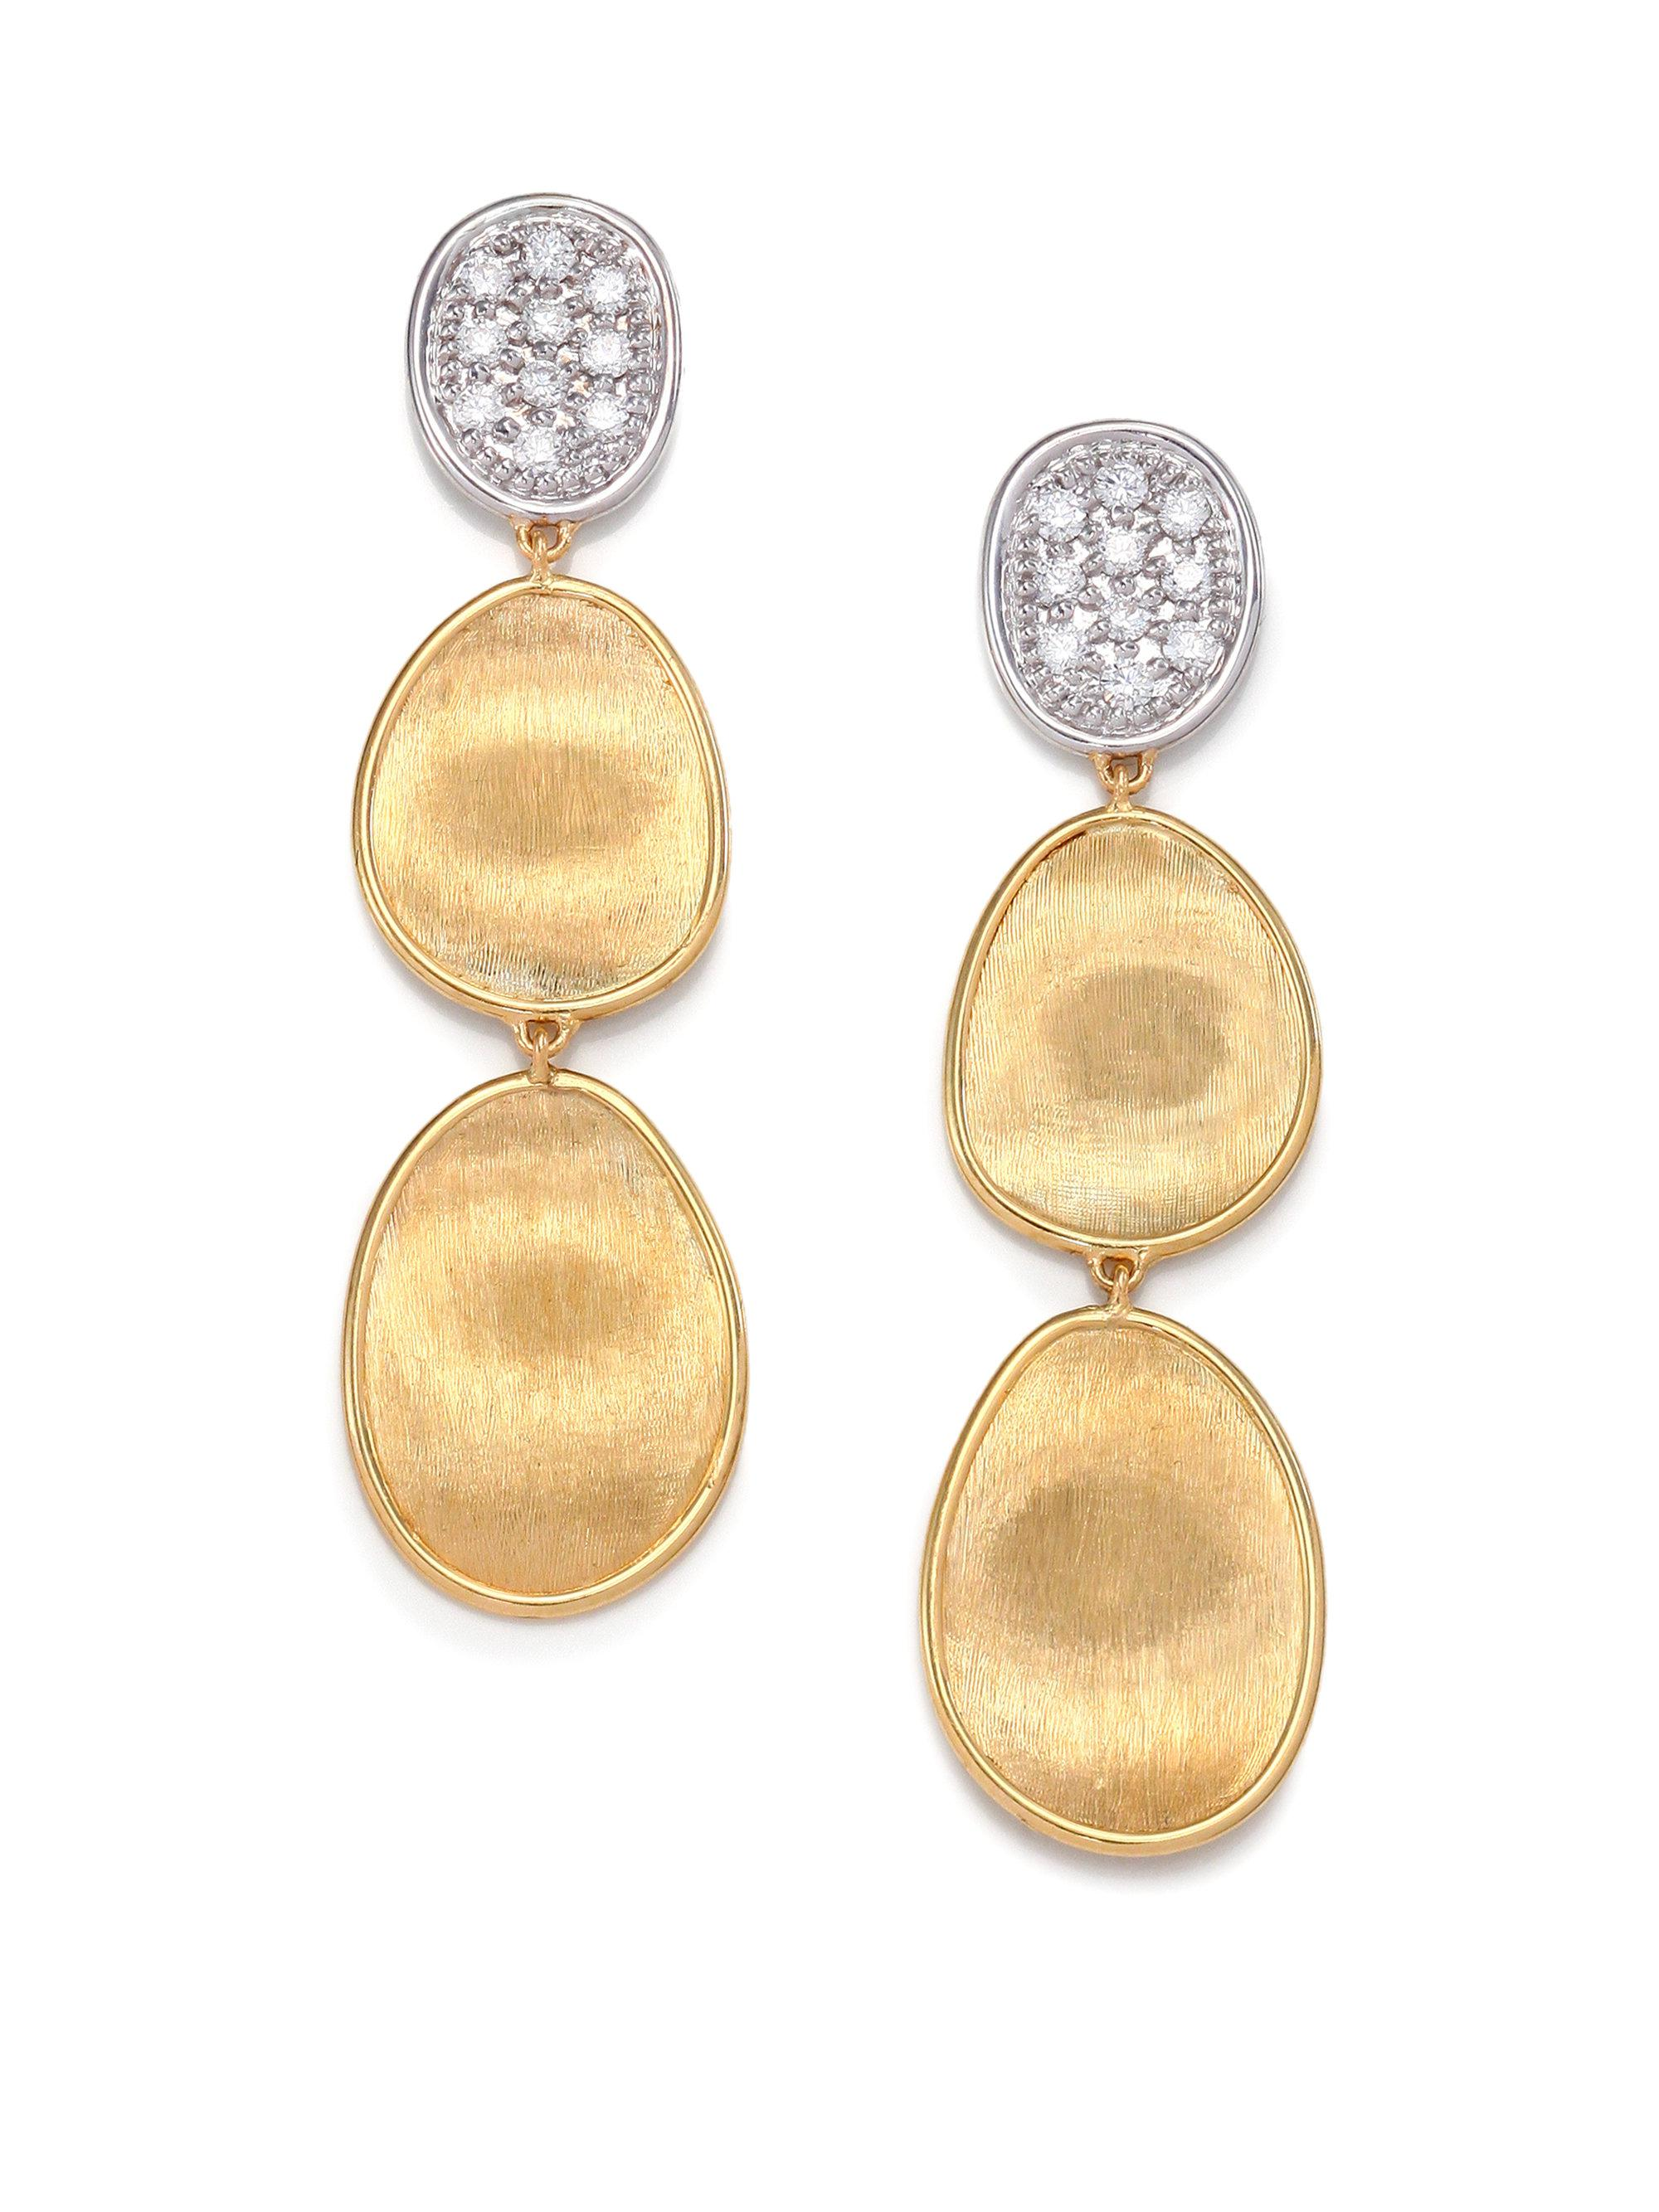 Marco Bicego Lunaria 18k Triple-Drop Earrings 3BLkRJNa